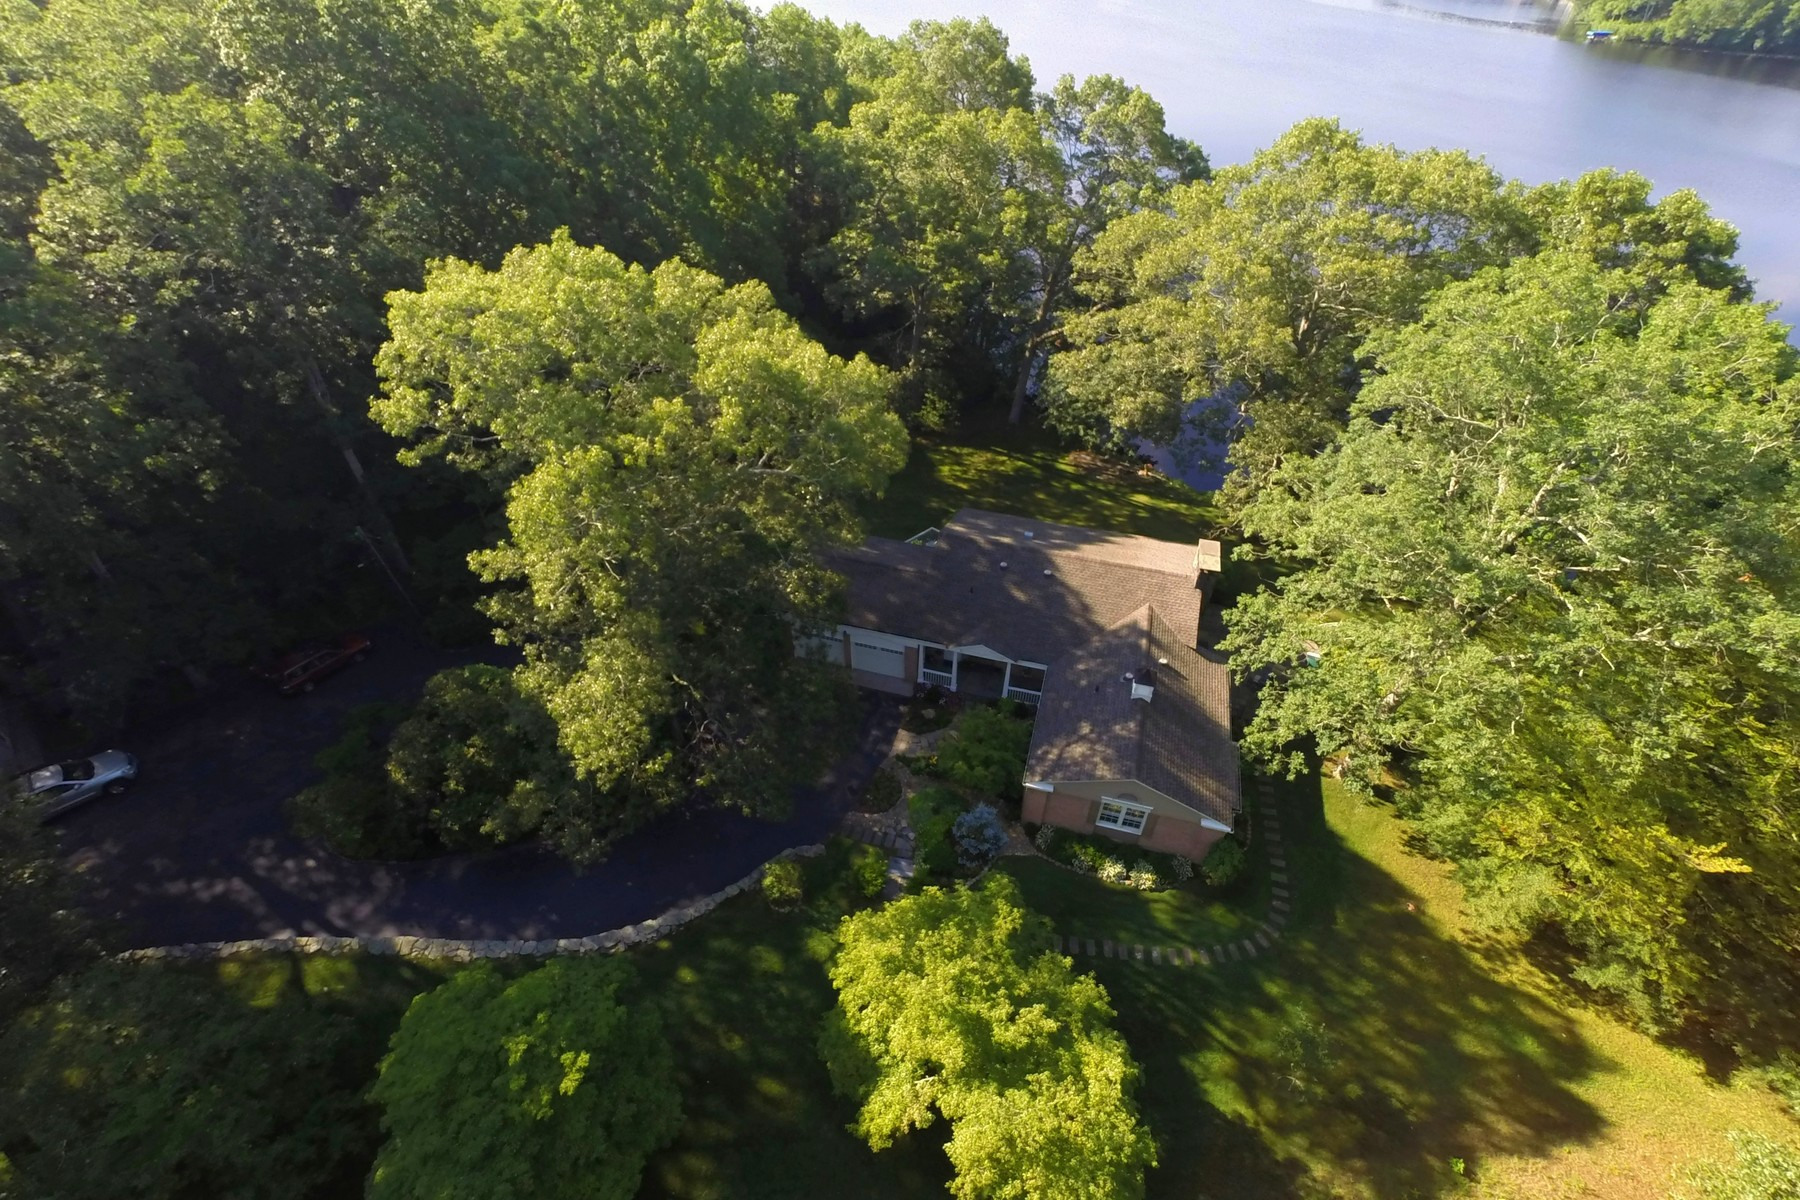 Single Family Home for Sale at Waterfront 45 Oakland Drive Montville, Connecticut 06370 United States